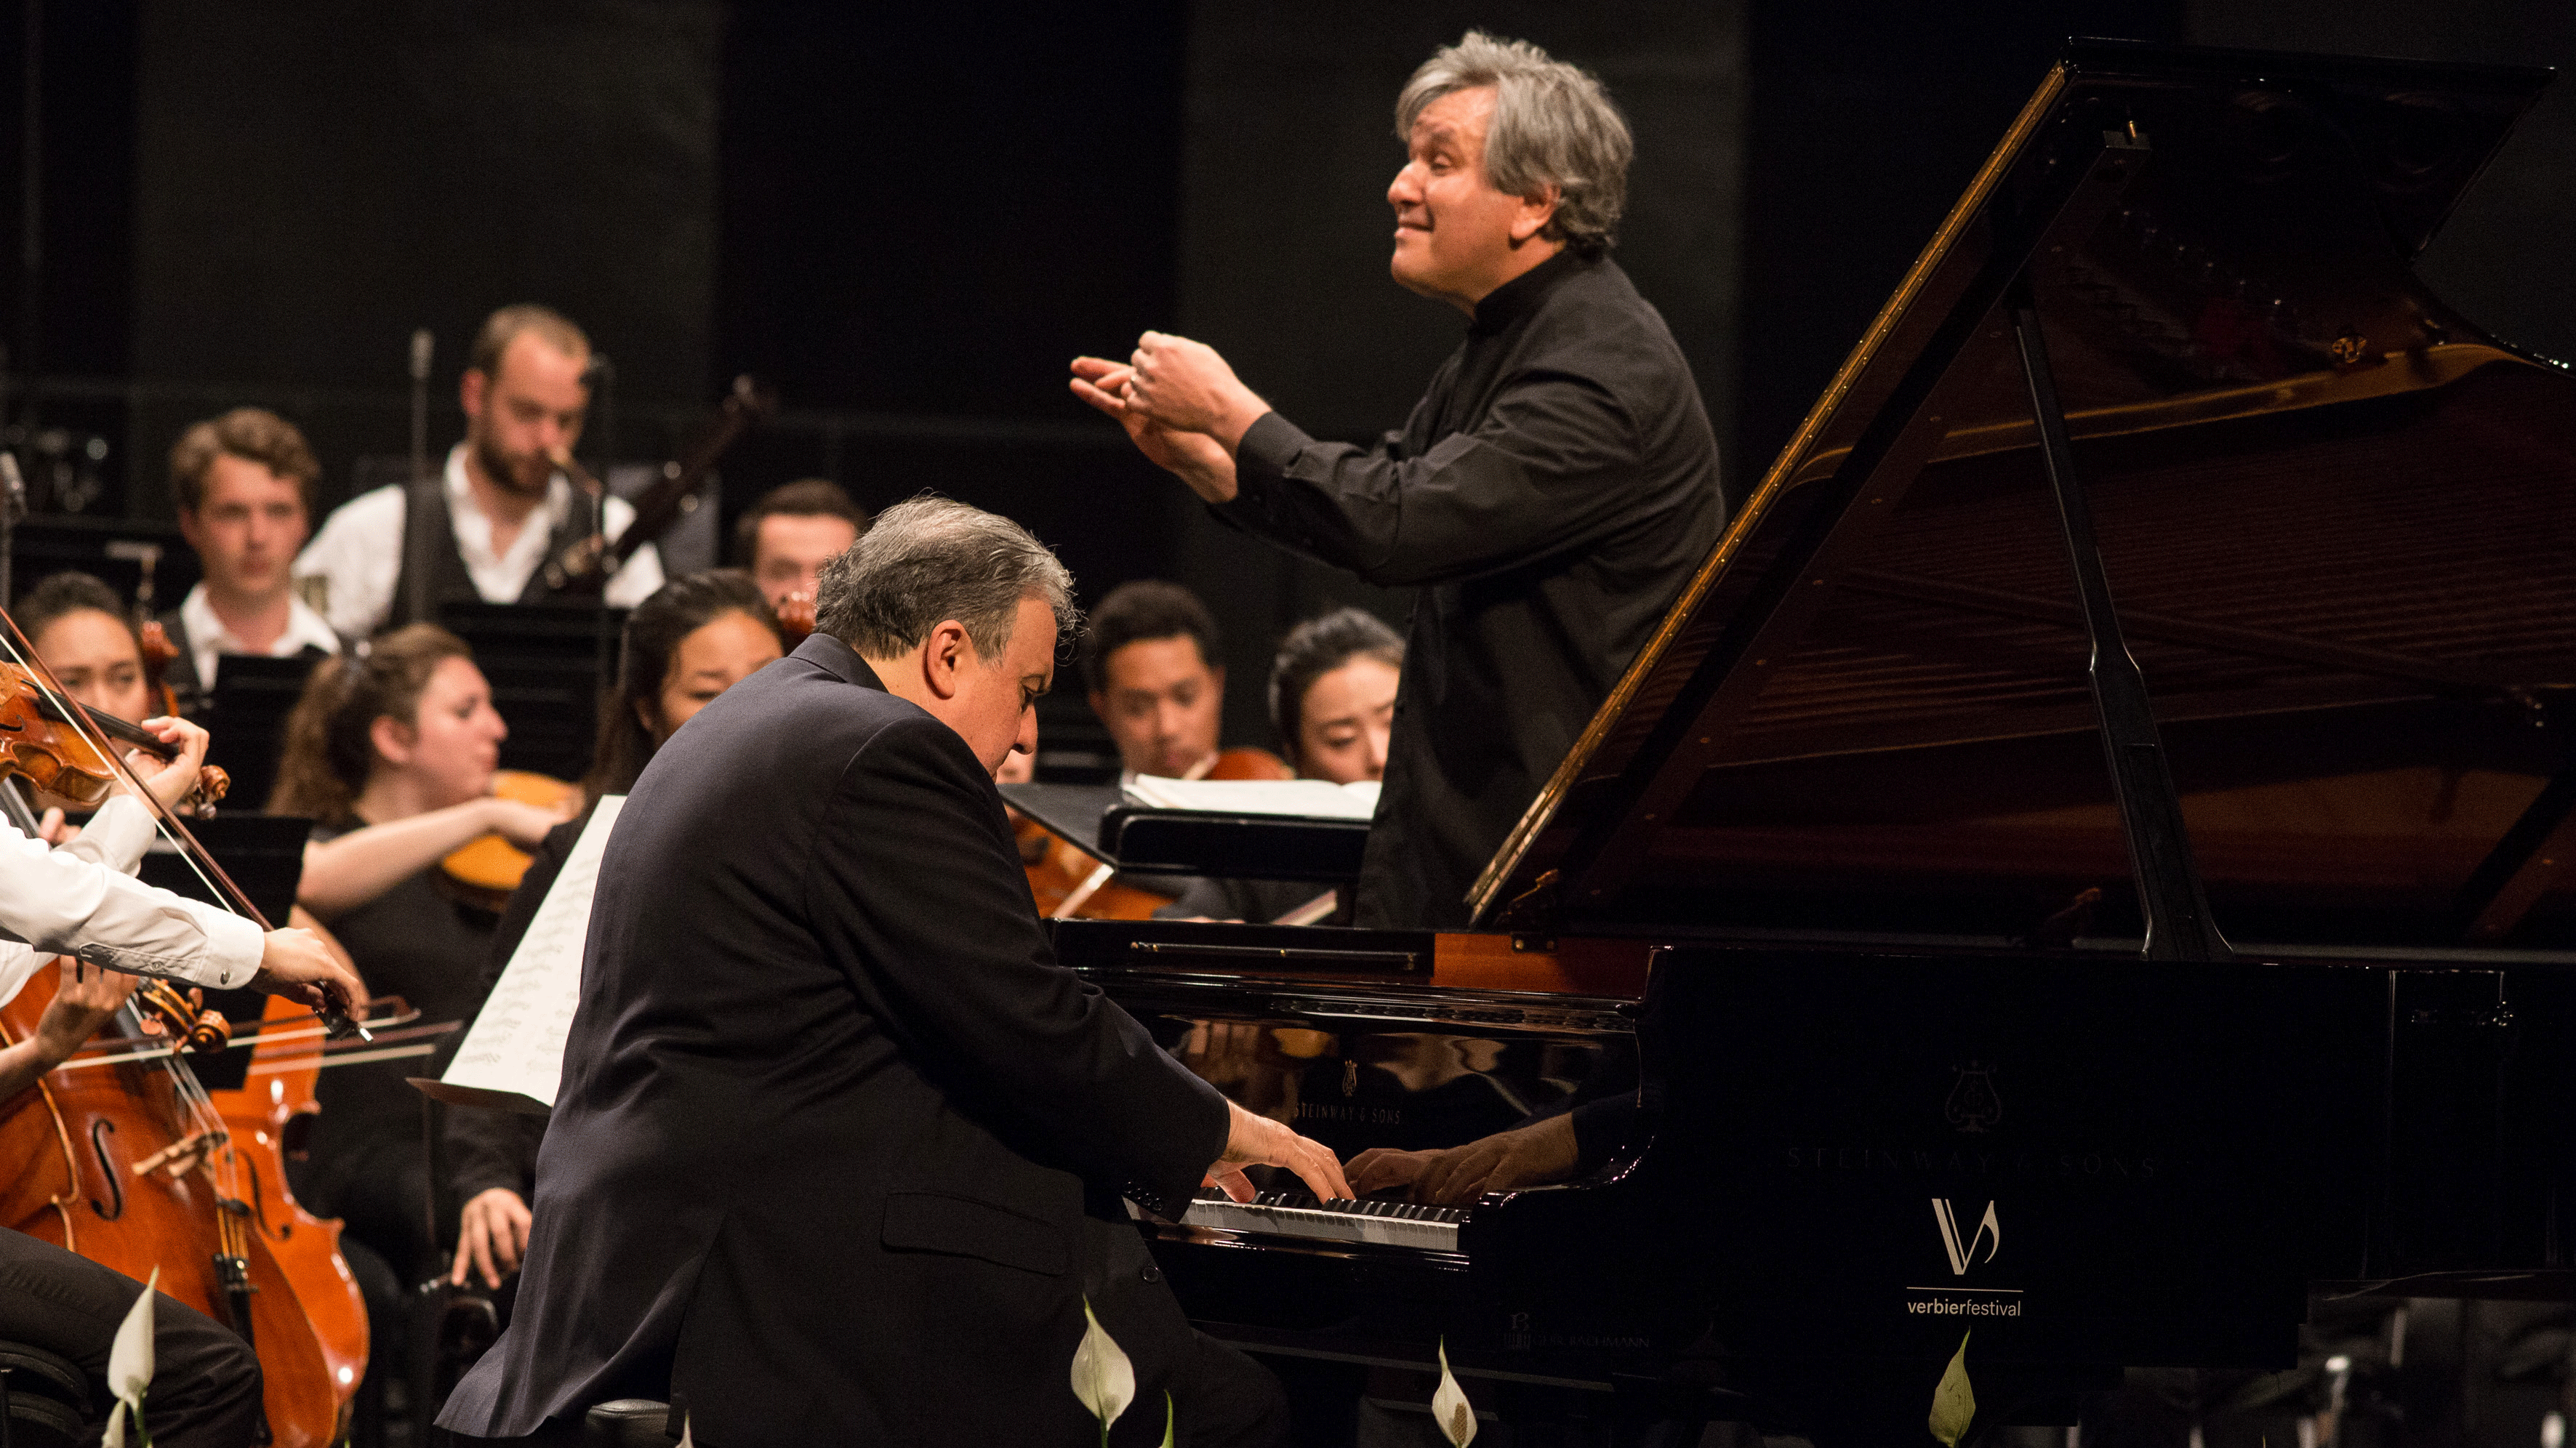 Sir Antonio Pappano conducts Brahms and Strauss – With Yefim Bronfman